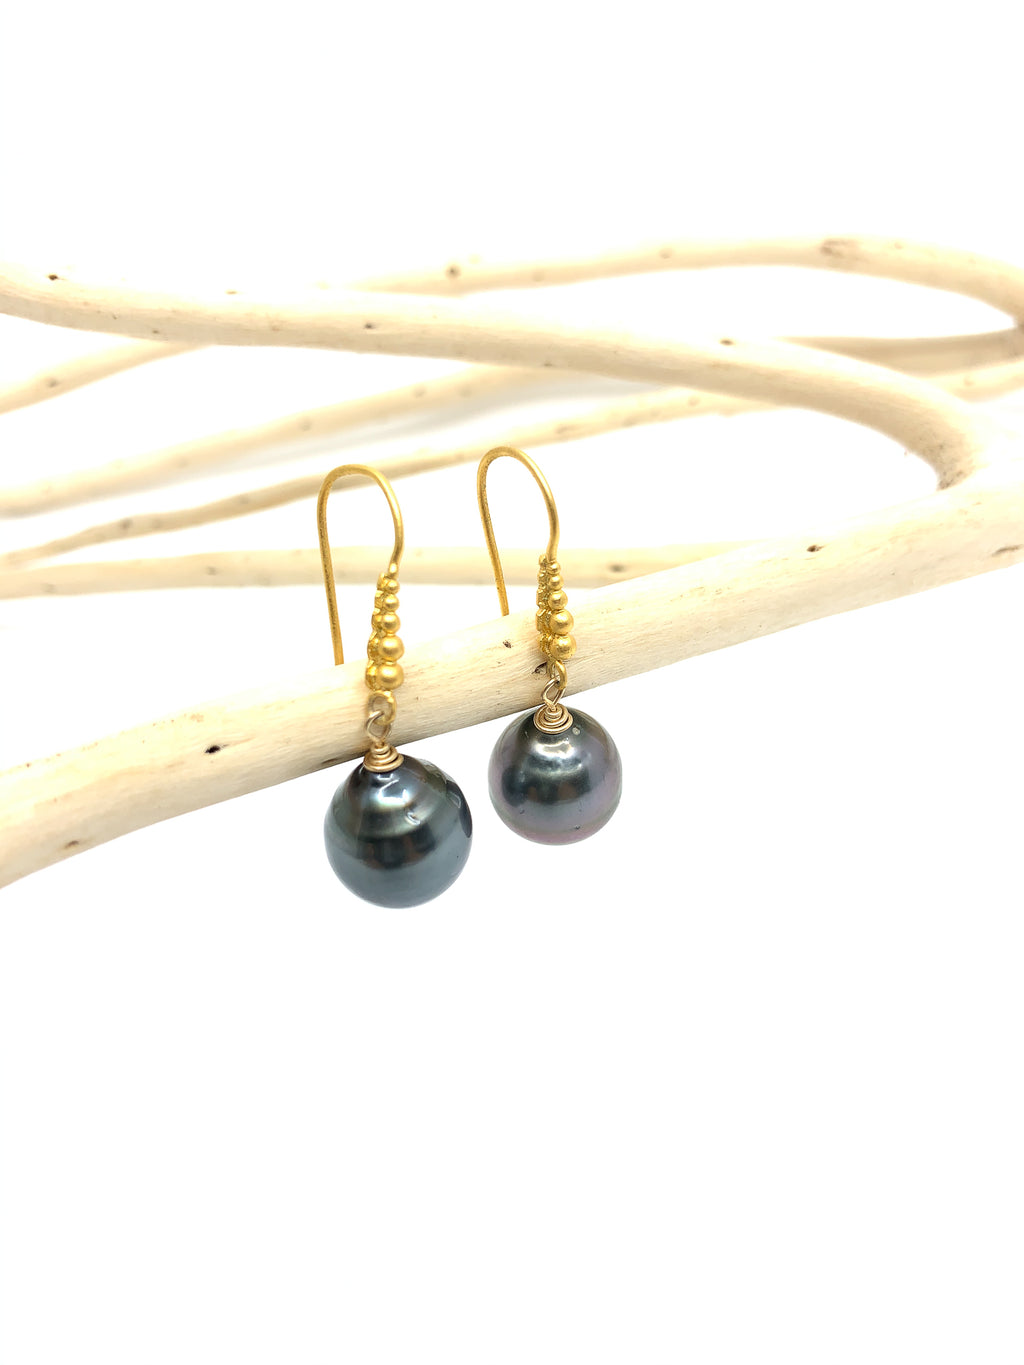 granulated Tahitian pearl gold earrings by eve black jewelry made in Hawaii